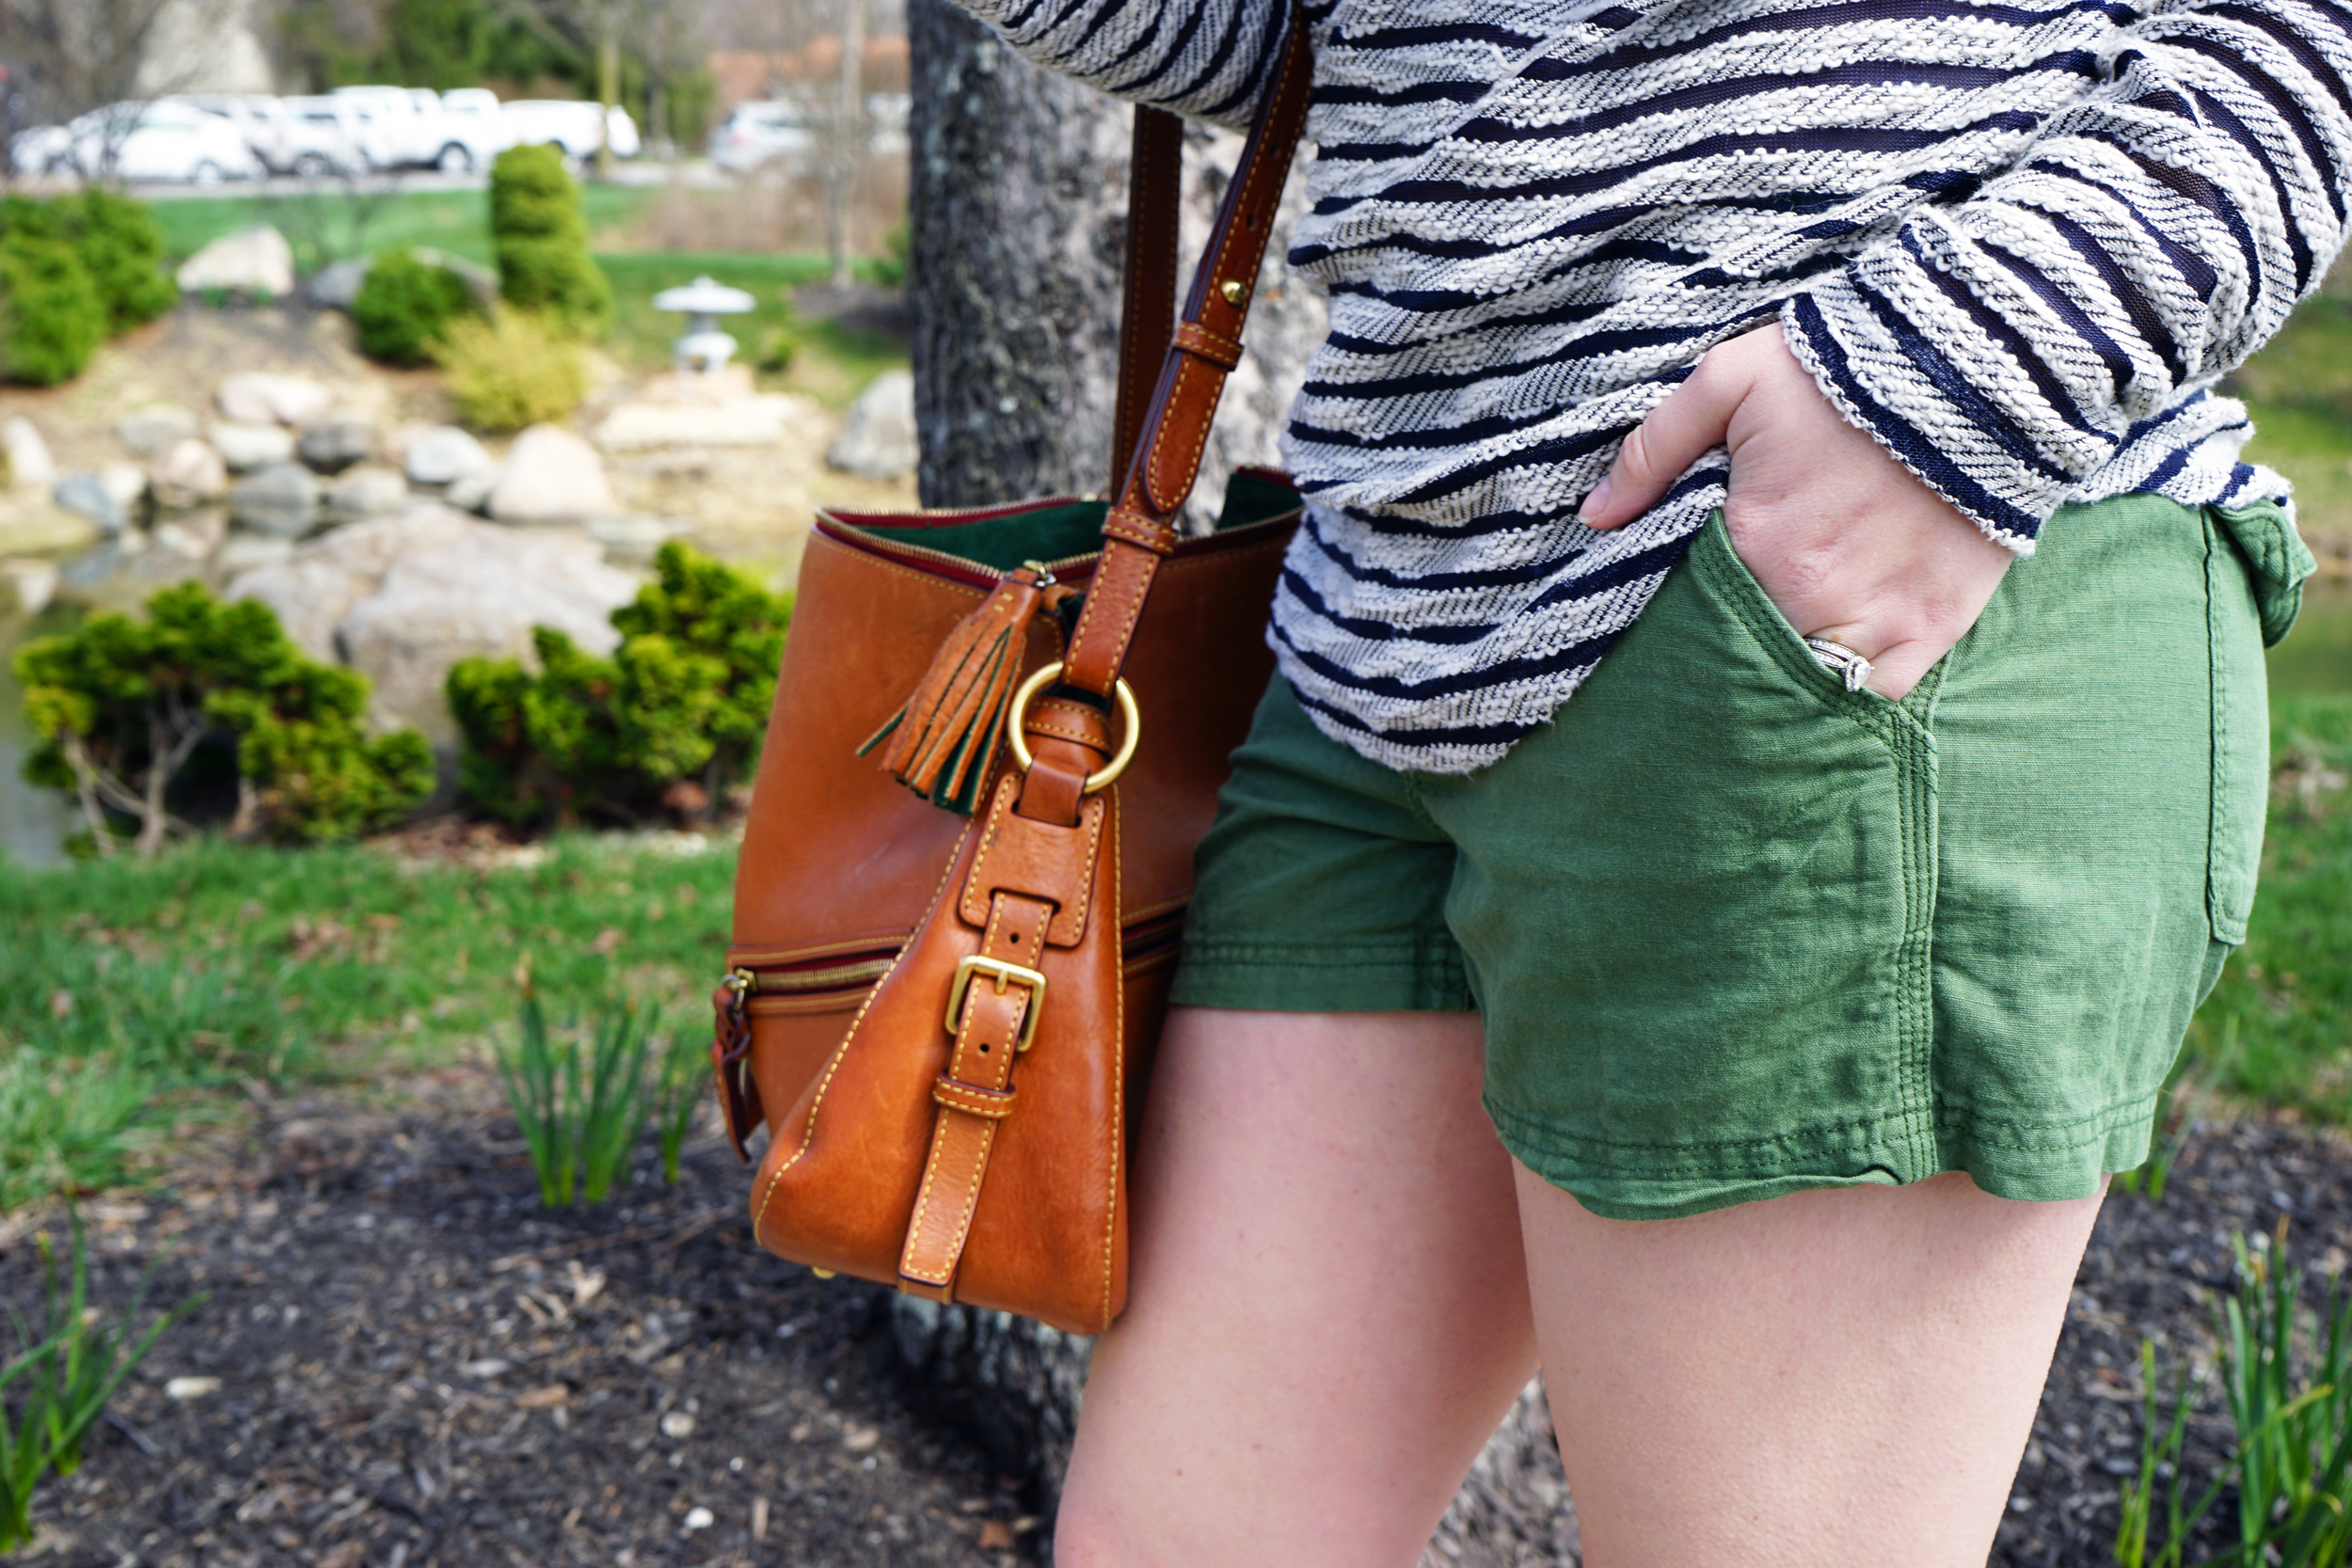 J Crew Factory garment-dyed linen shorts, Lou & Grey stripe baseball tee, Dooney and Bourke purse, Madewell d'orsay dot flats - Maggie a la Mode